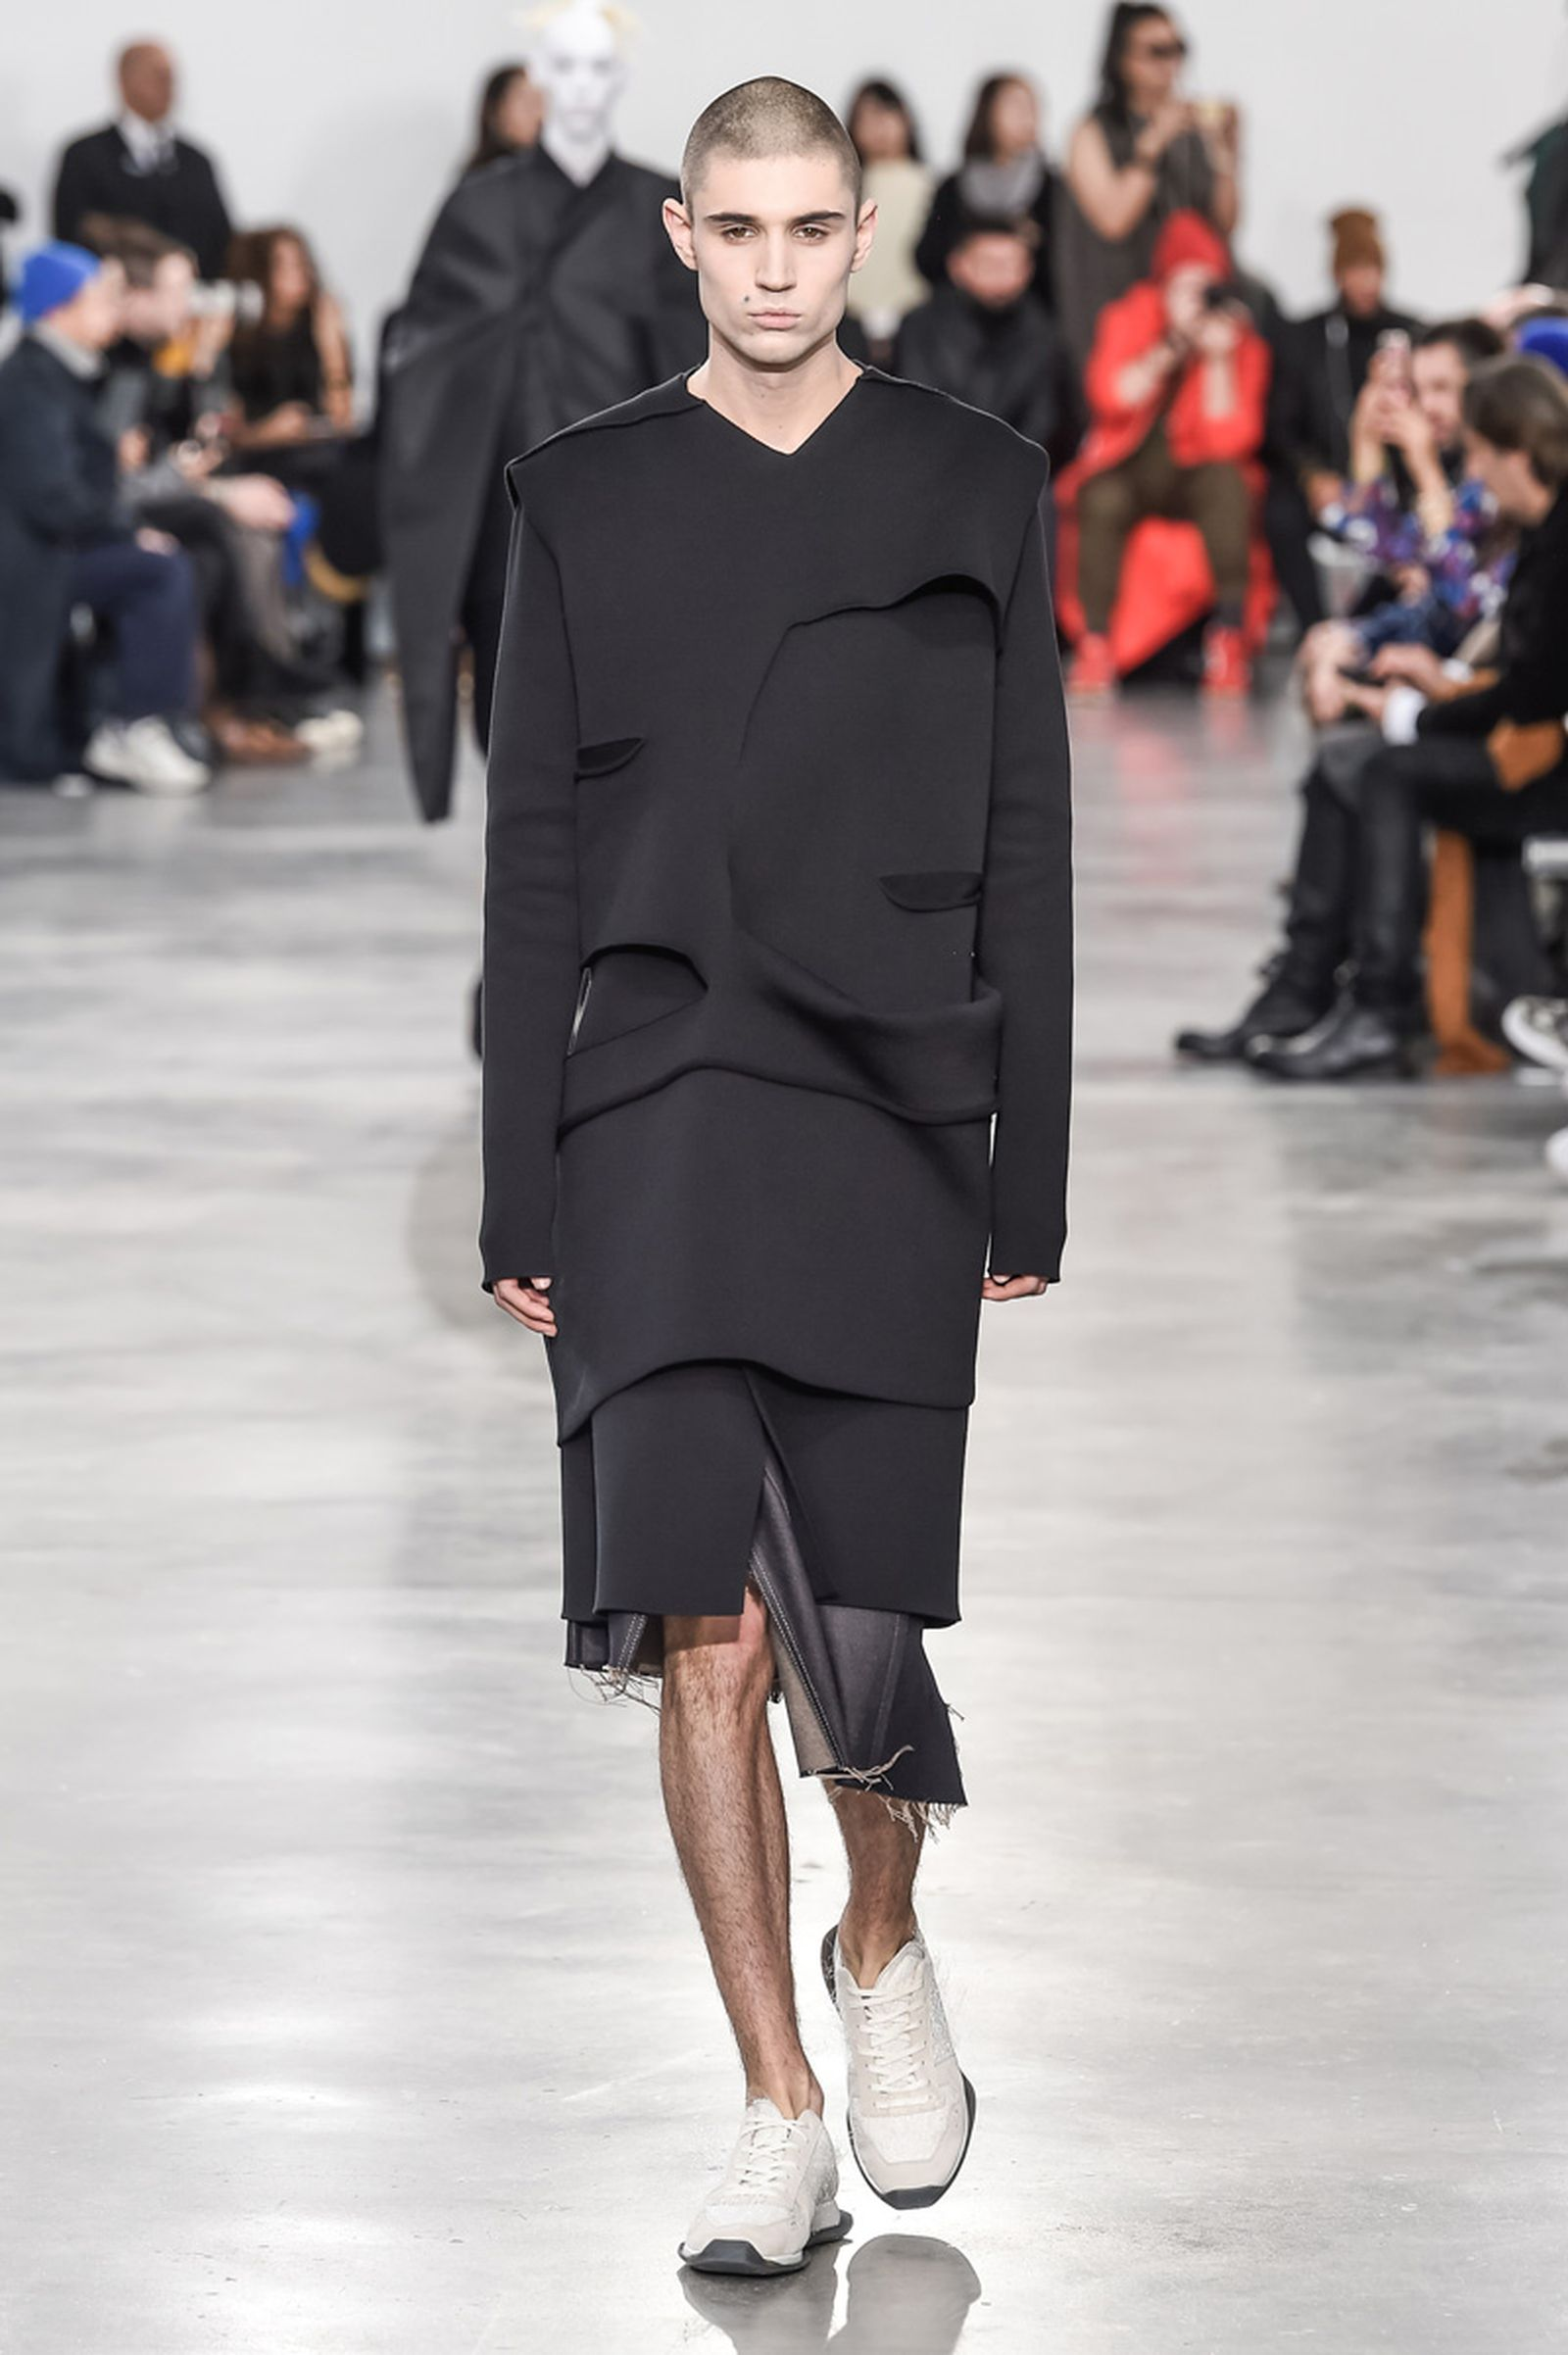 Rick Owens Menswear Fall Winter 2018 Collection Paris Fashion Week runway